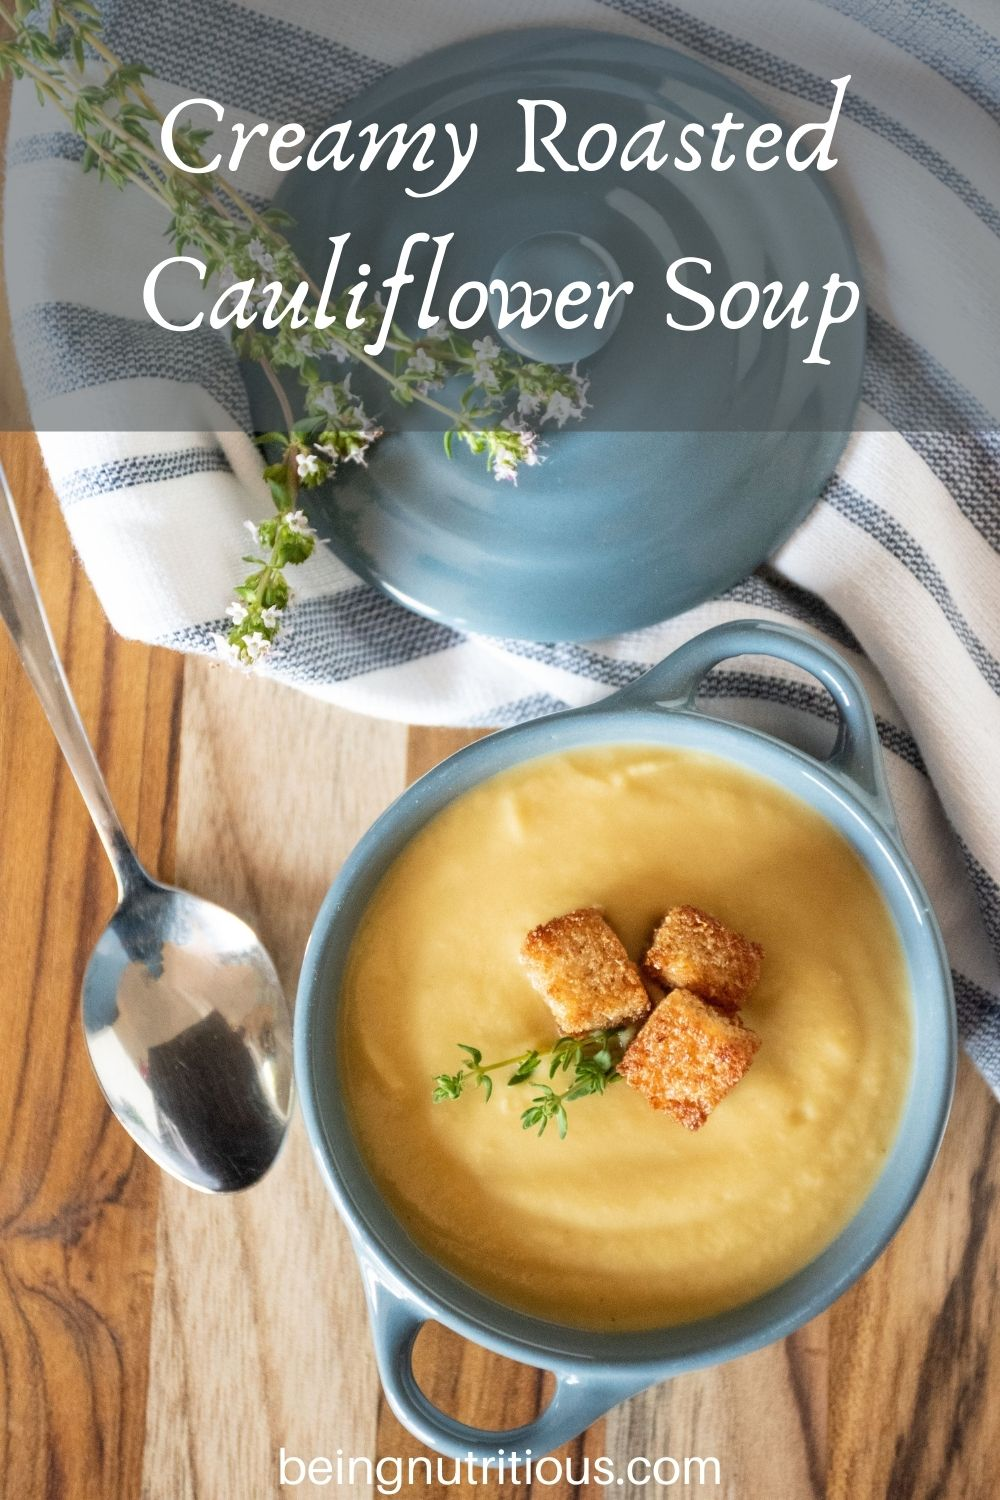 Small bowl of soup with croutons and fresh thyme. Text overlay: Creamy Roasted Cauliflower Soup.